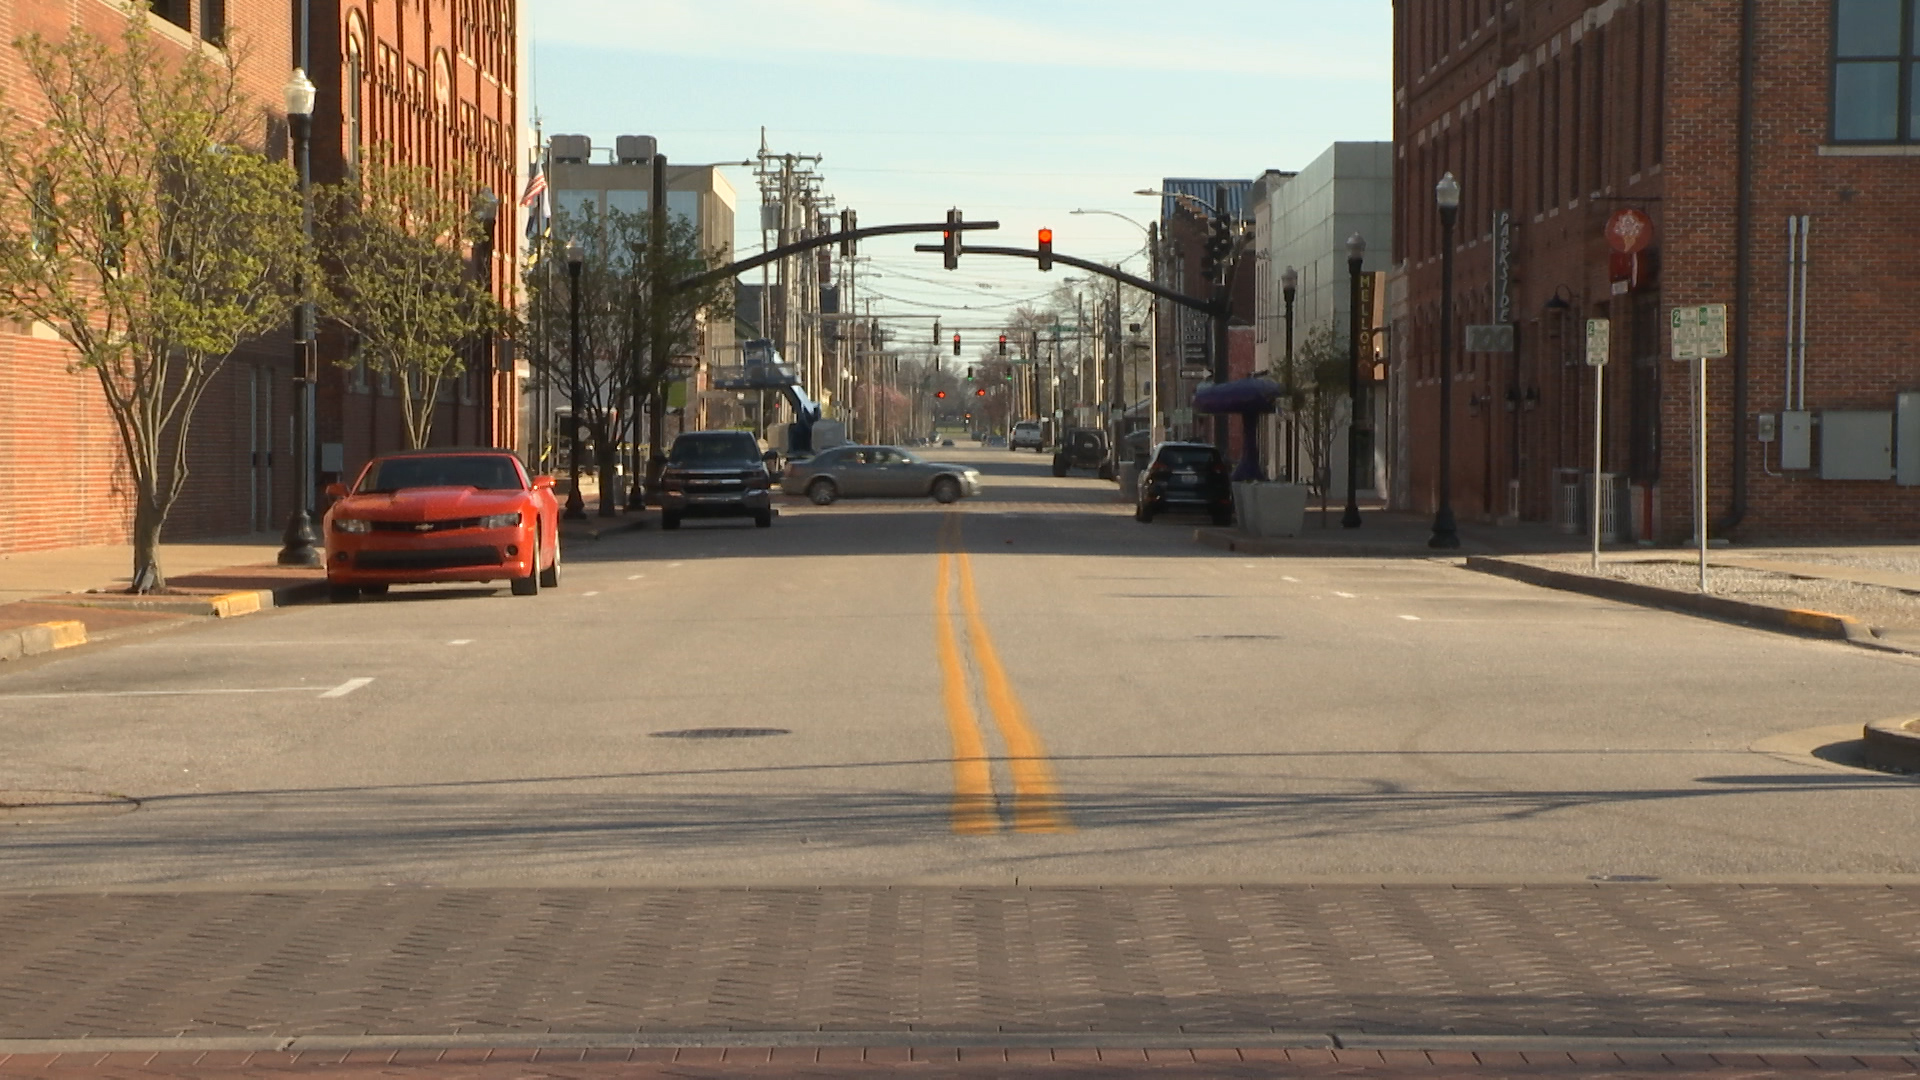 Owensboro Christmas Parade 2020 Owensboro Christmas parade canceled due to pandemic concerns